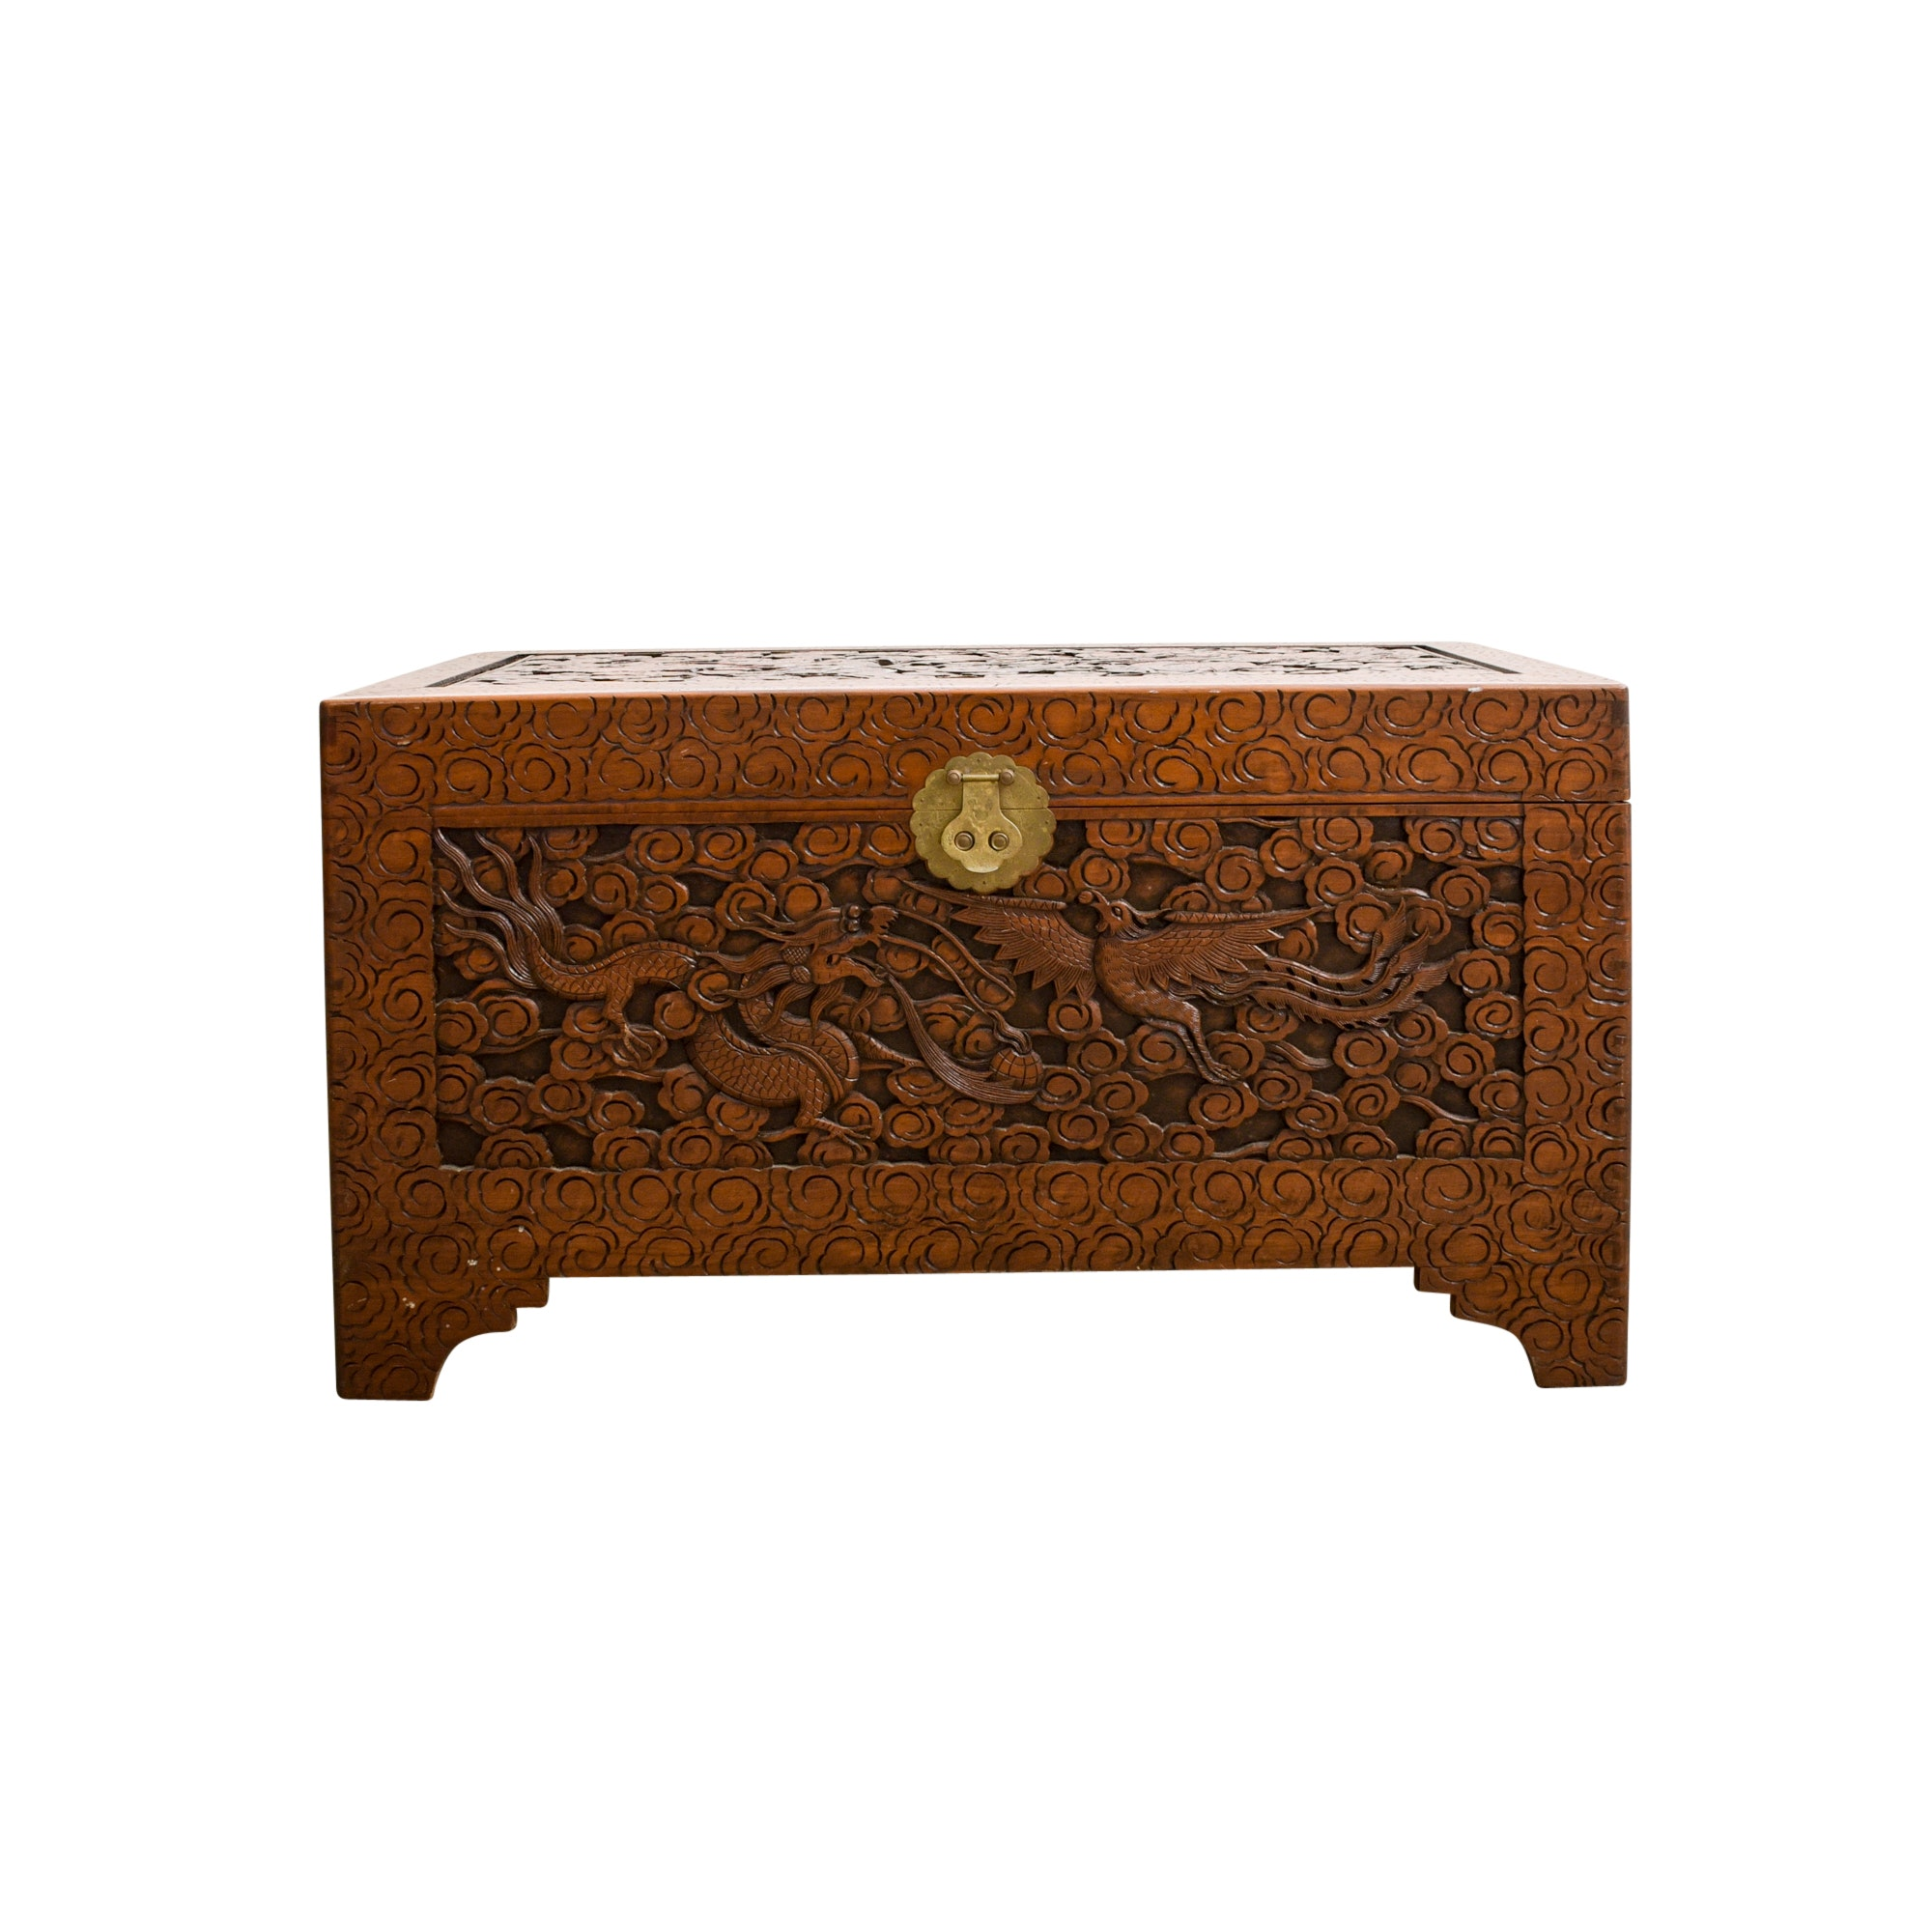 Chinese Carved Teak Chest